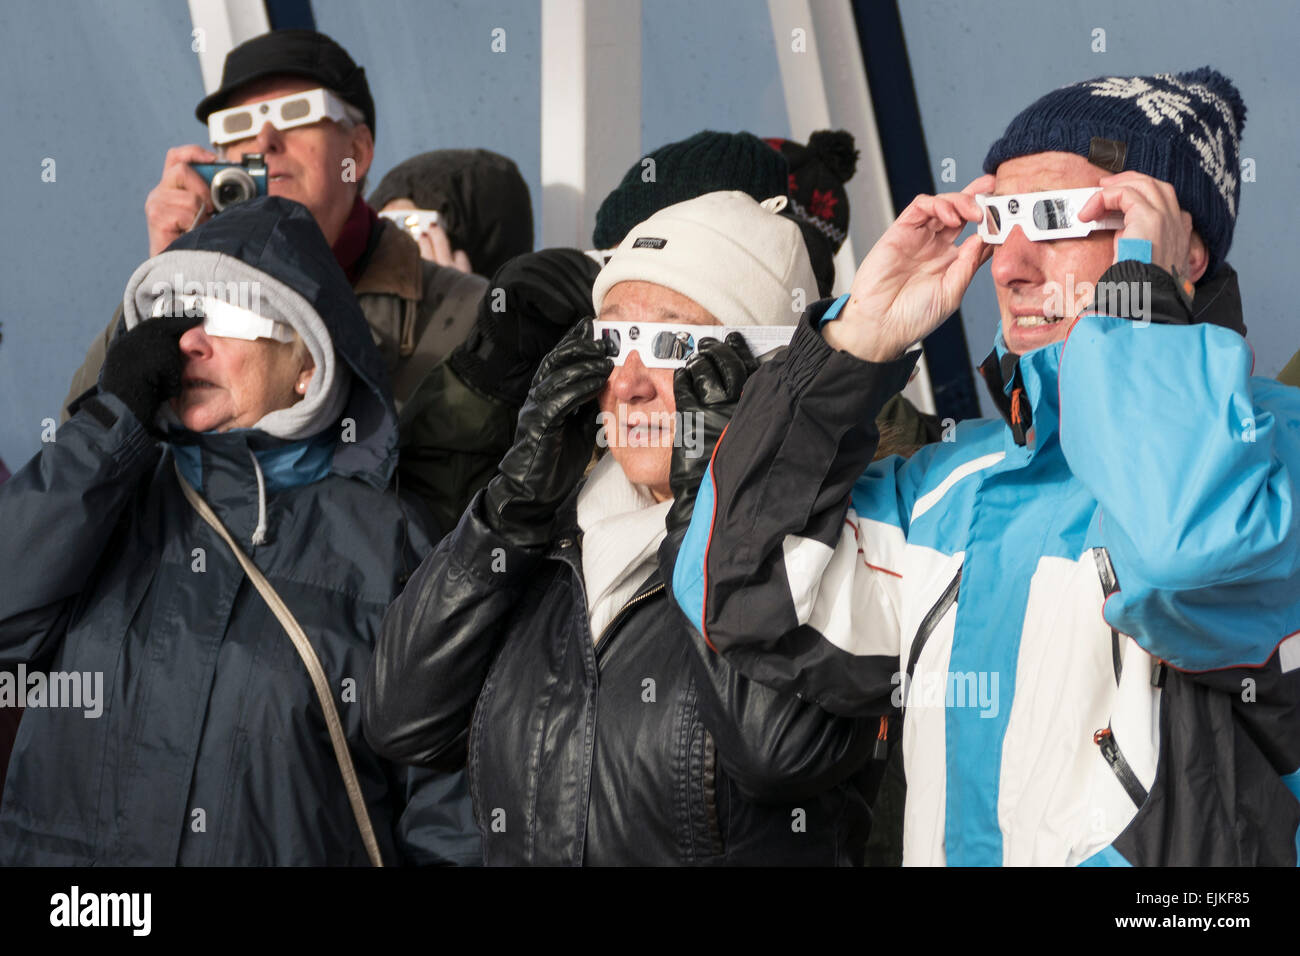 Solar Eclipse viewing with protective glasses - Stock Image